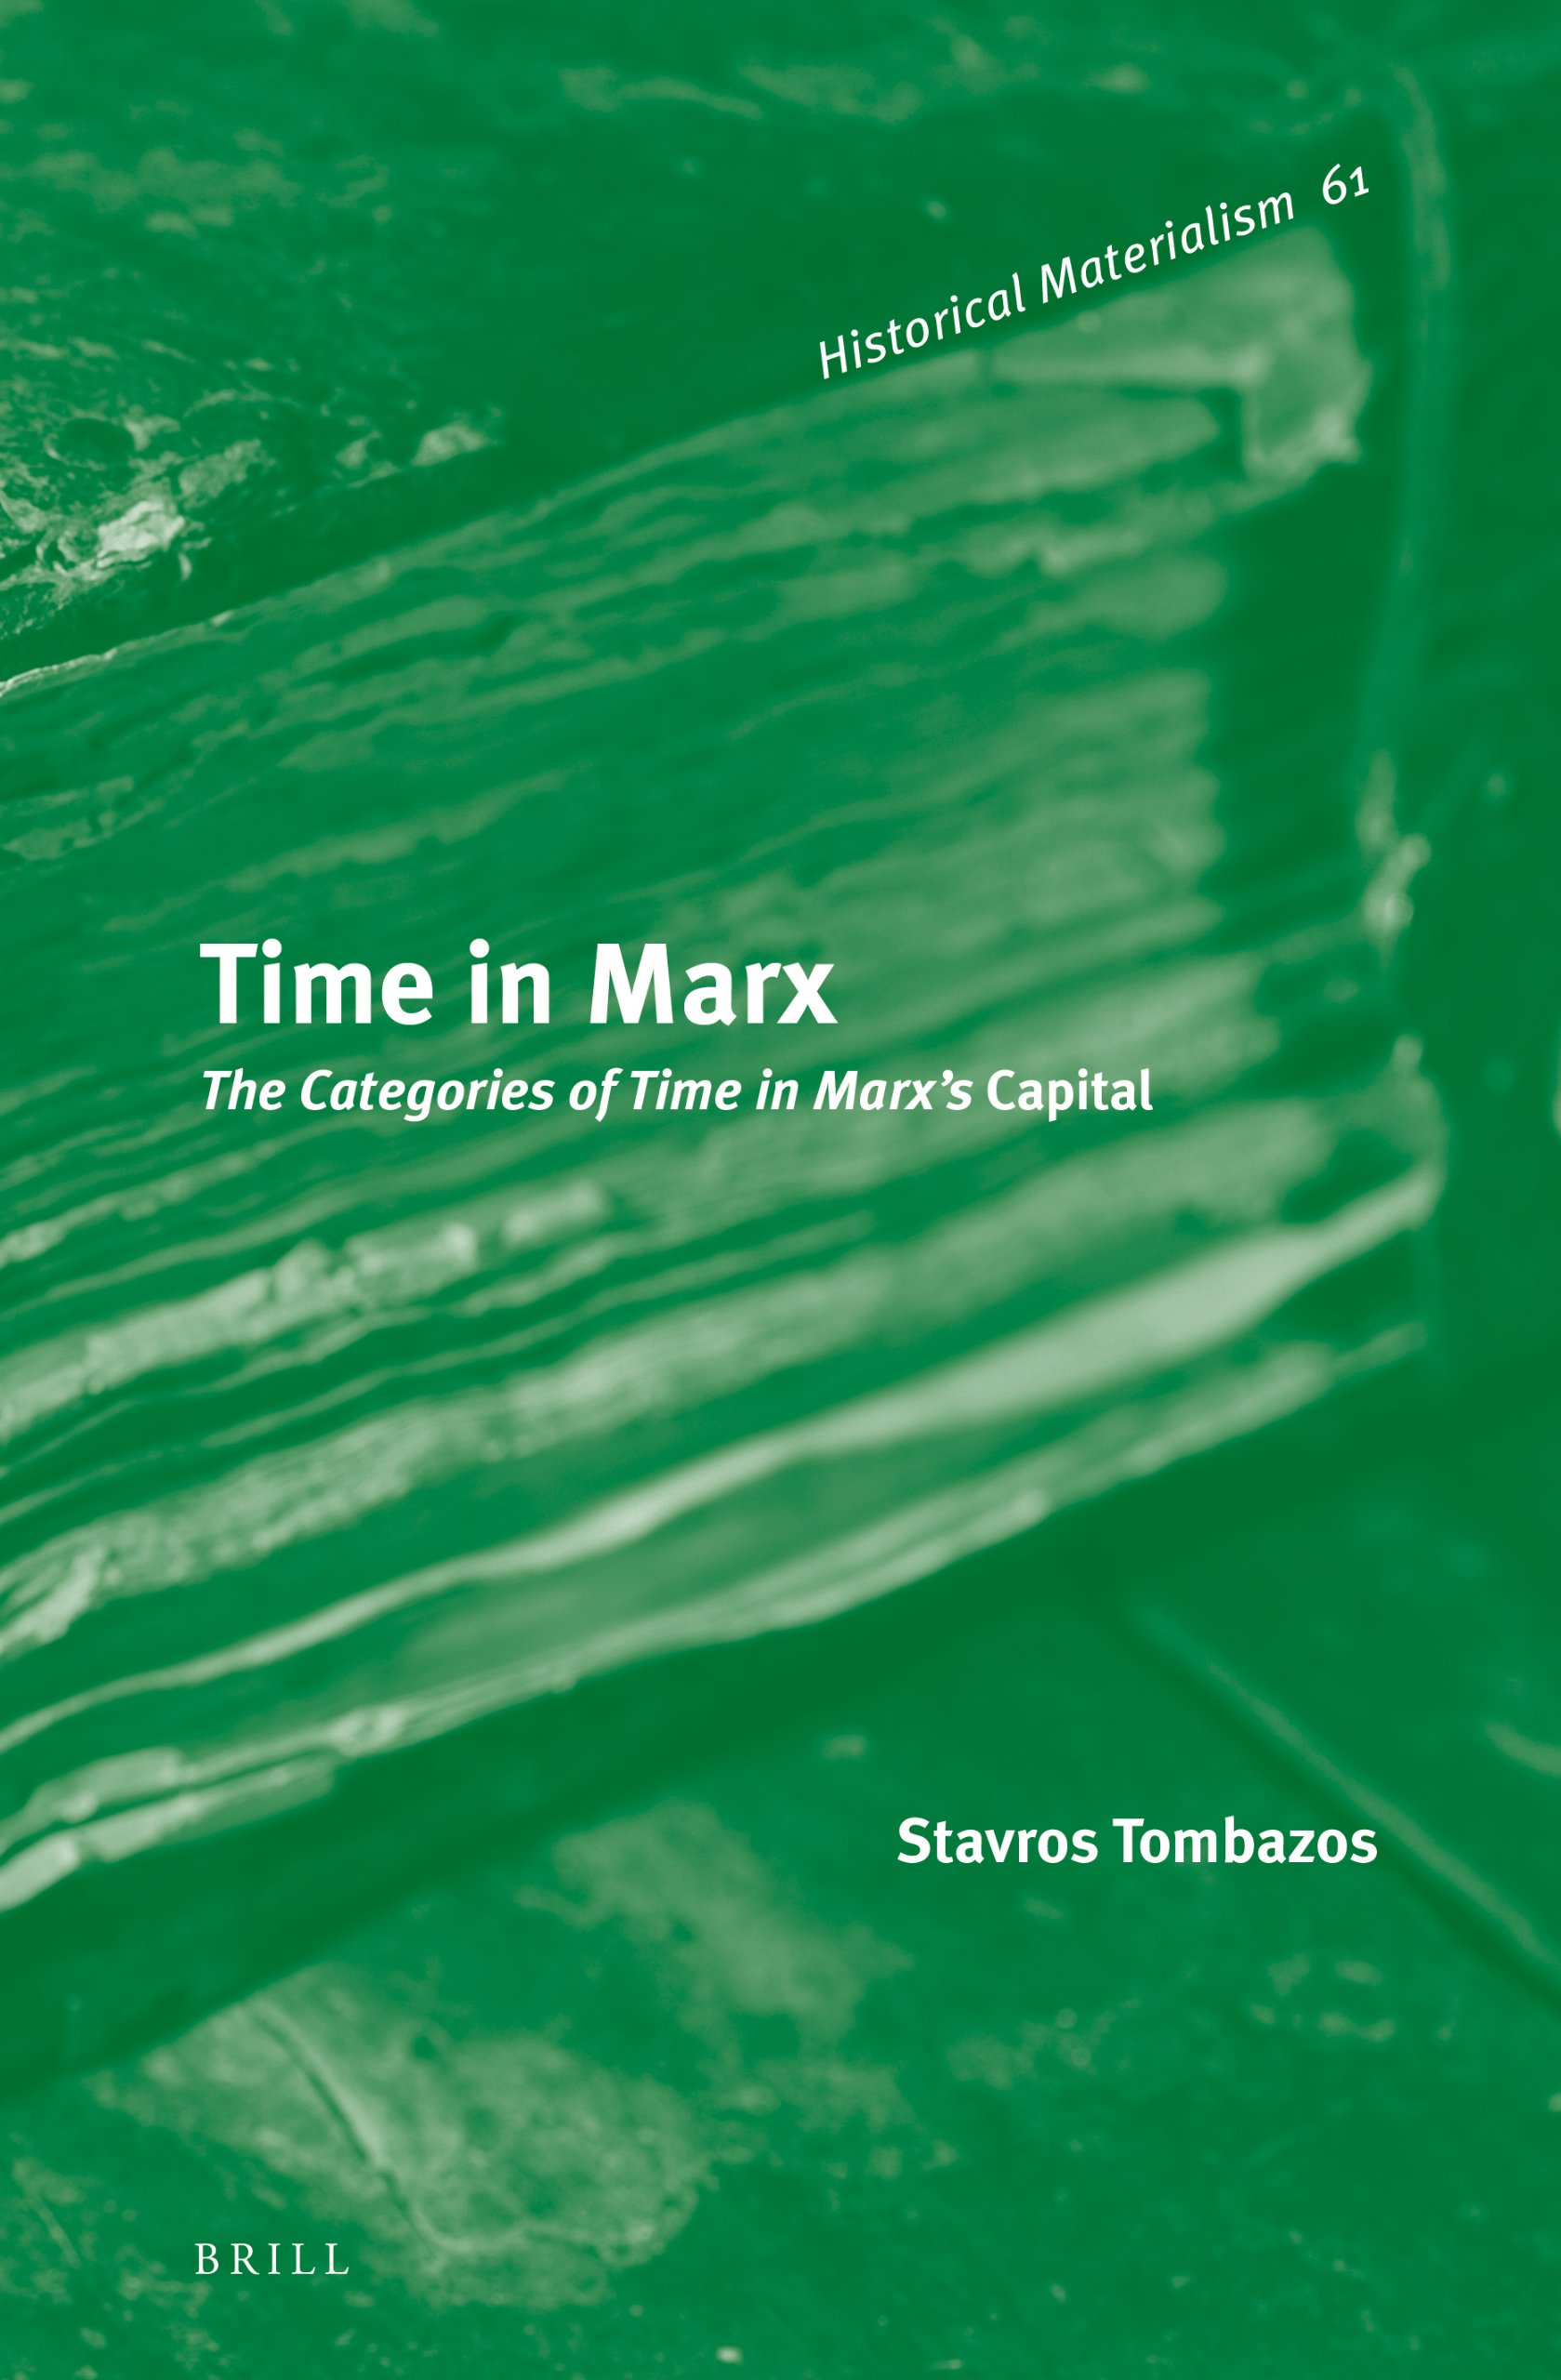 Image result for Time in Marx book Stavros